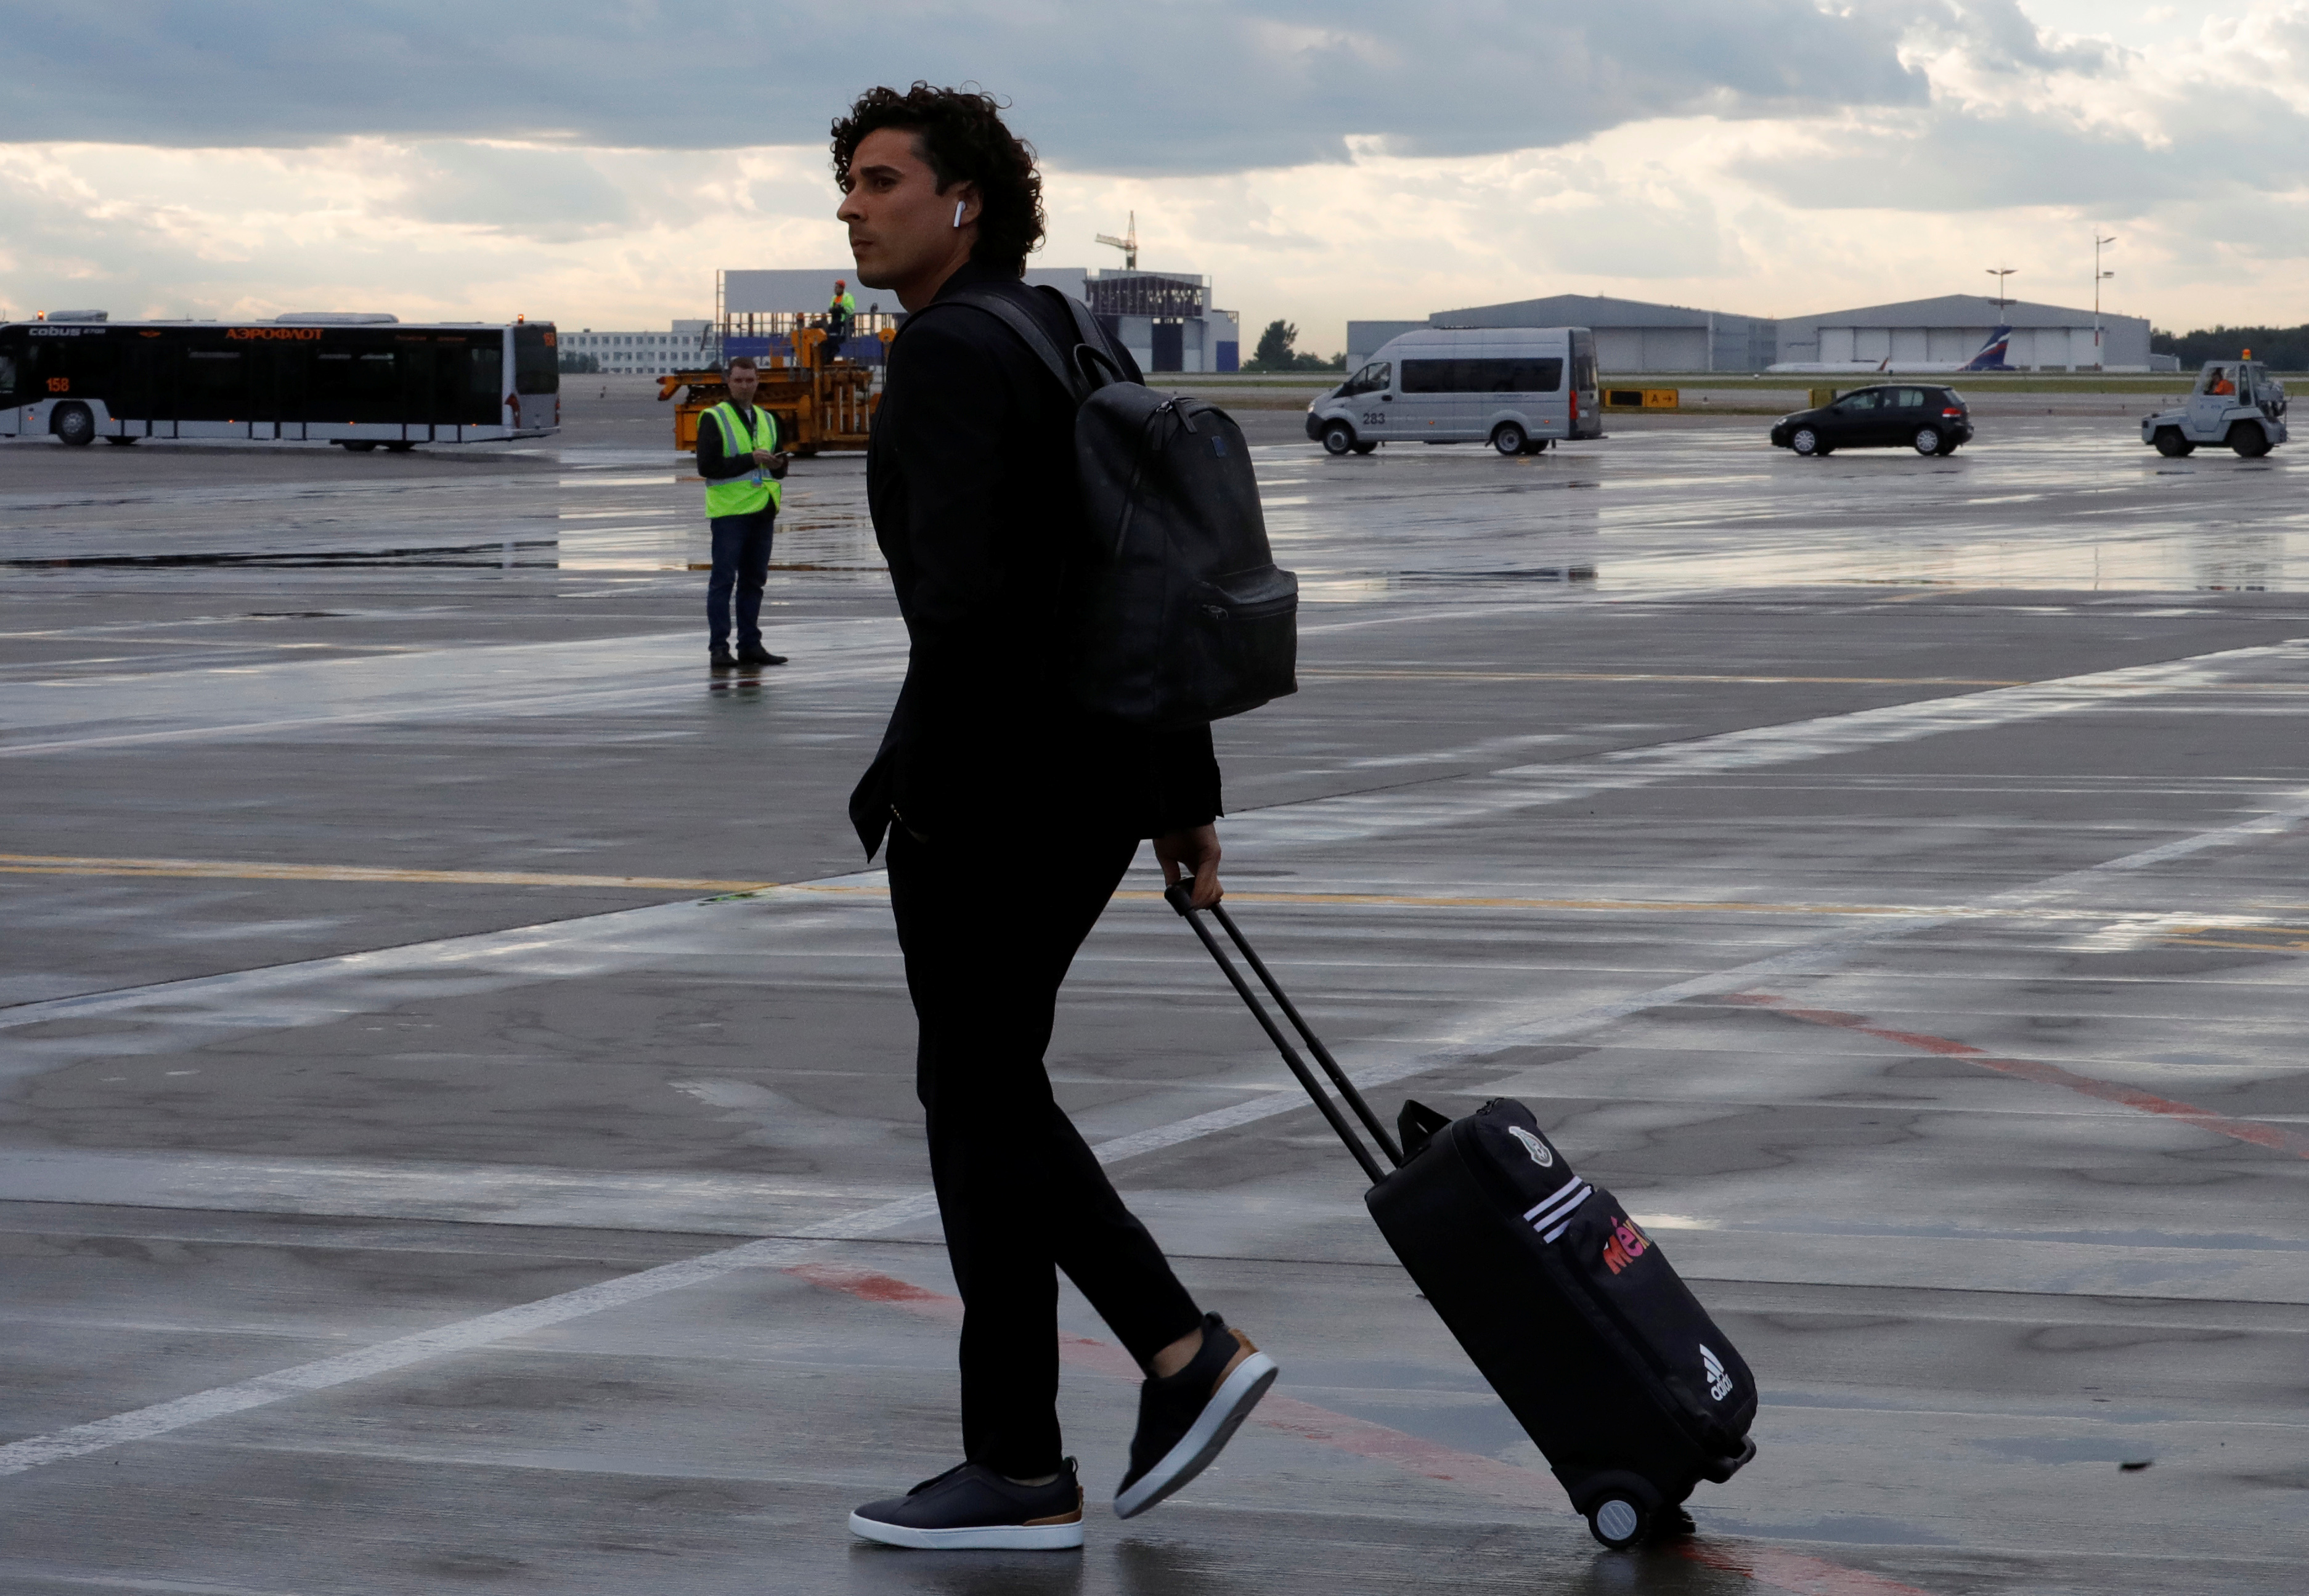 Soccer Football - World Cup - Mexico Arrival - Sheremetyevo International Airport, Moscow Region, Russia - June 11, 2018 Mexico's Guillermo Ochoa walks upon the arrival. REUTERS/Tatyana Makeyeva - RC1B29B6D0E0